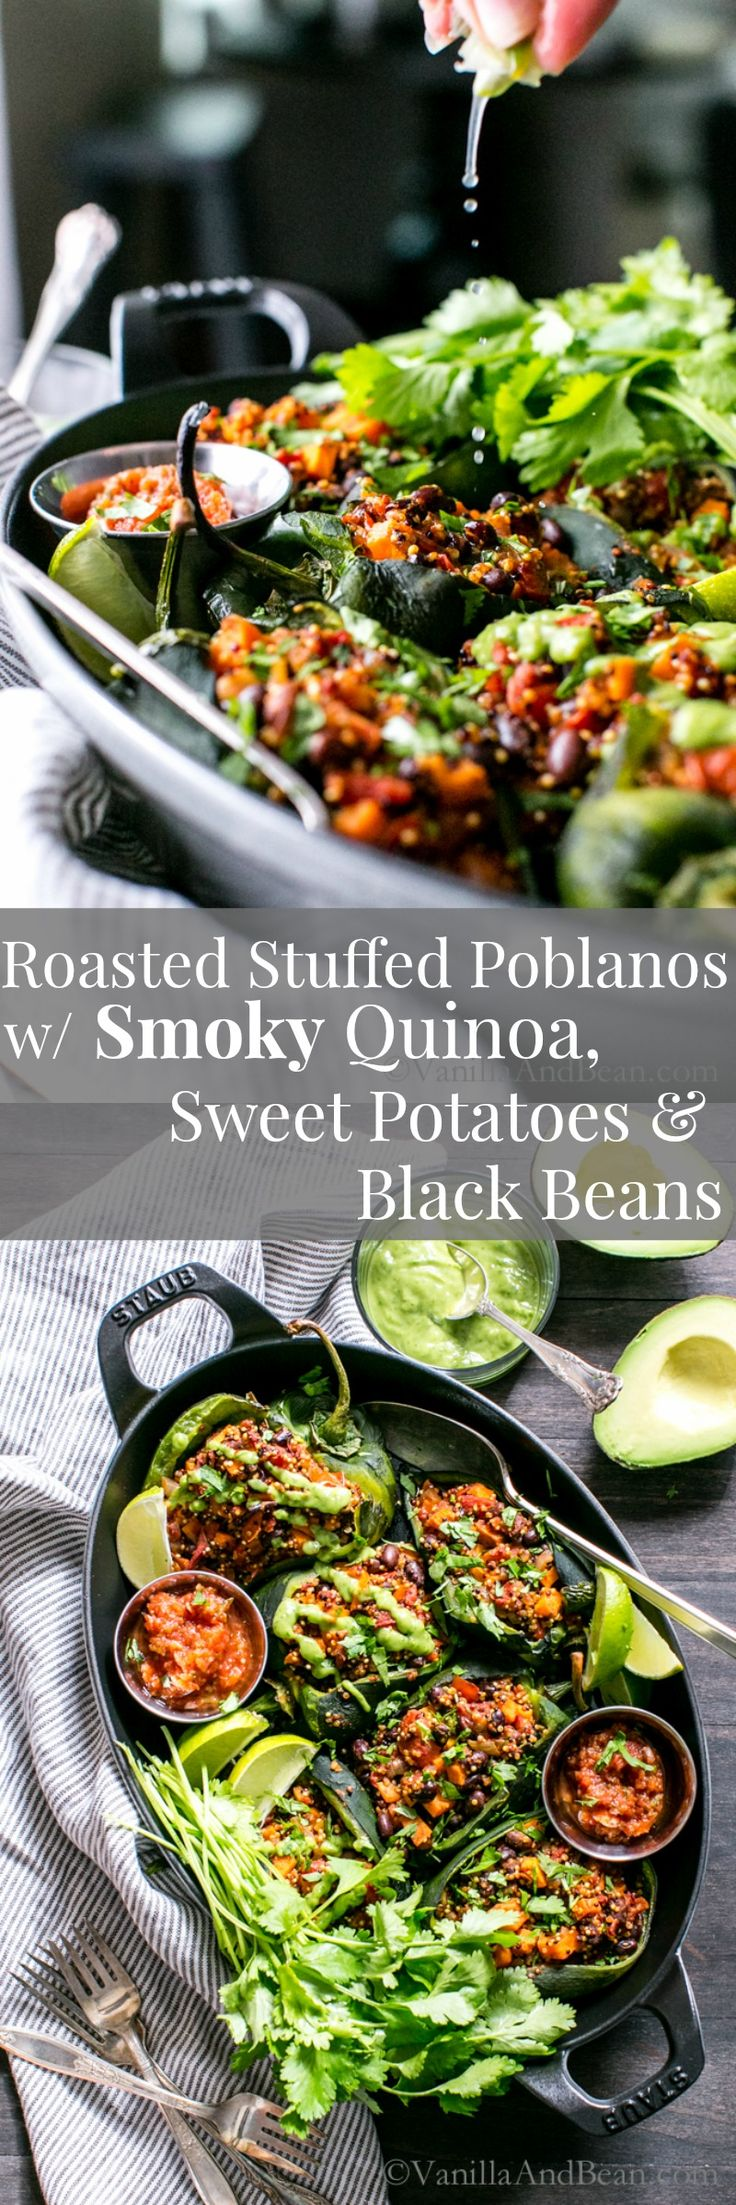 Fabulous for weekend or weeknight. Mealprep included! Roasted Stuffed Poblanos with Smoky Quinoa, Sweet Potatoes and Black Beans | Vegan + Gluten Free